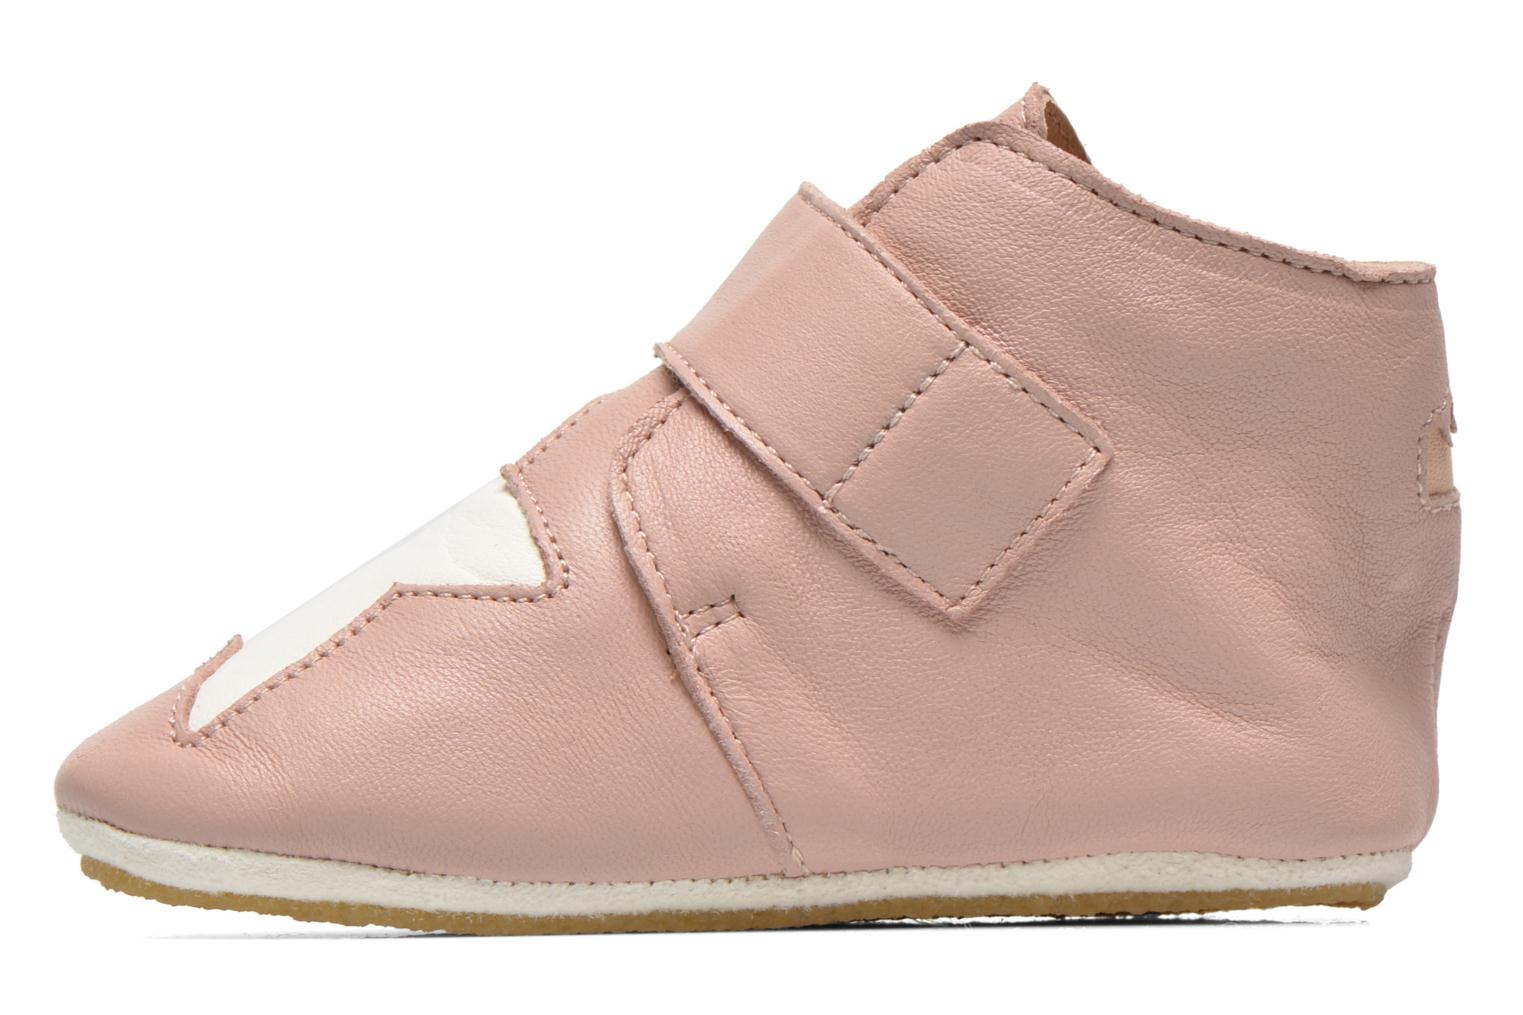 Pantoffels Easy Peasy Kiny Patin Etoile Roze voorkant